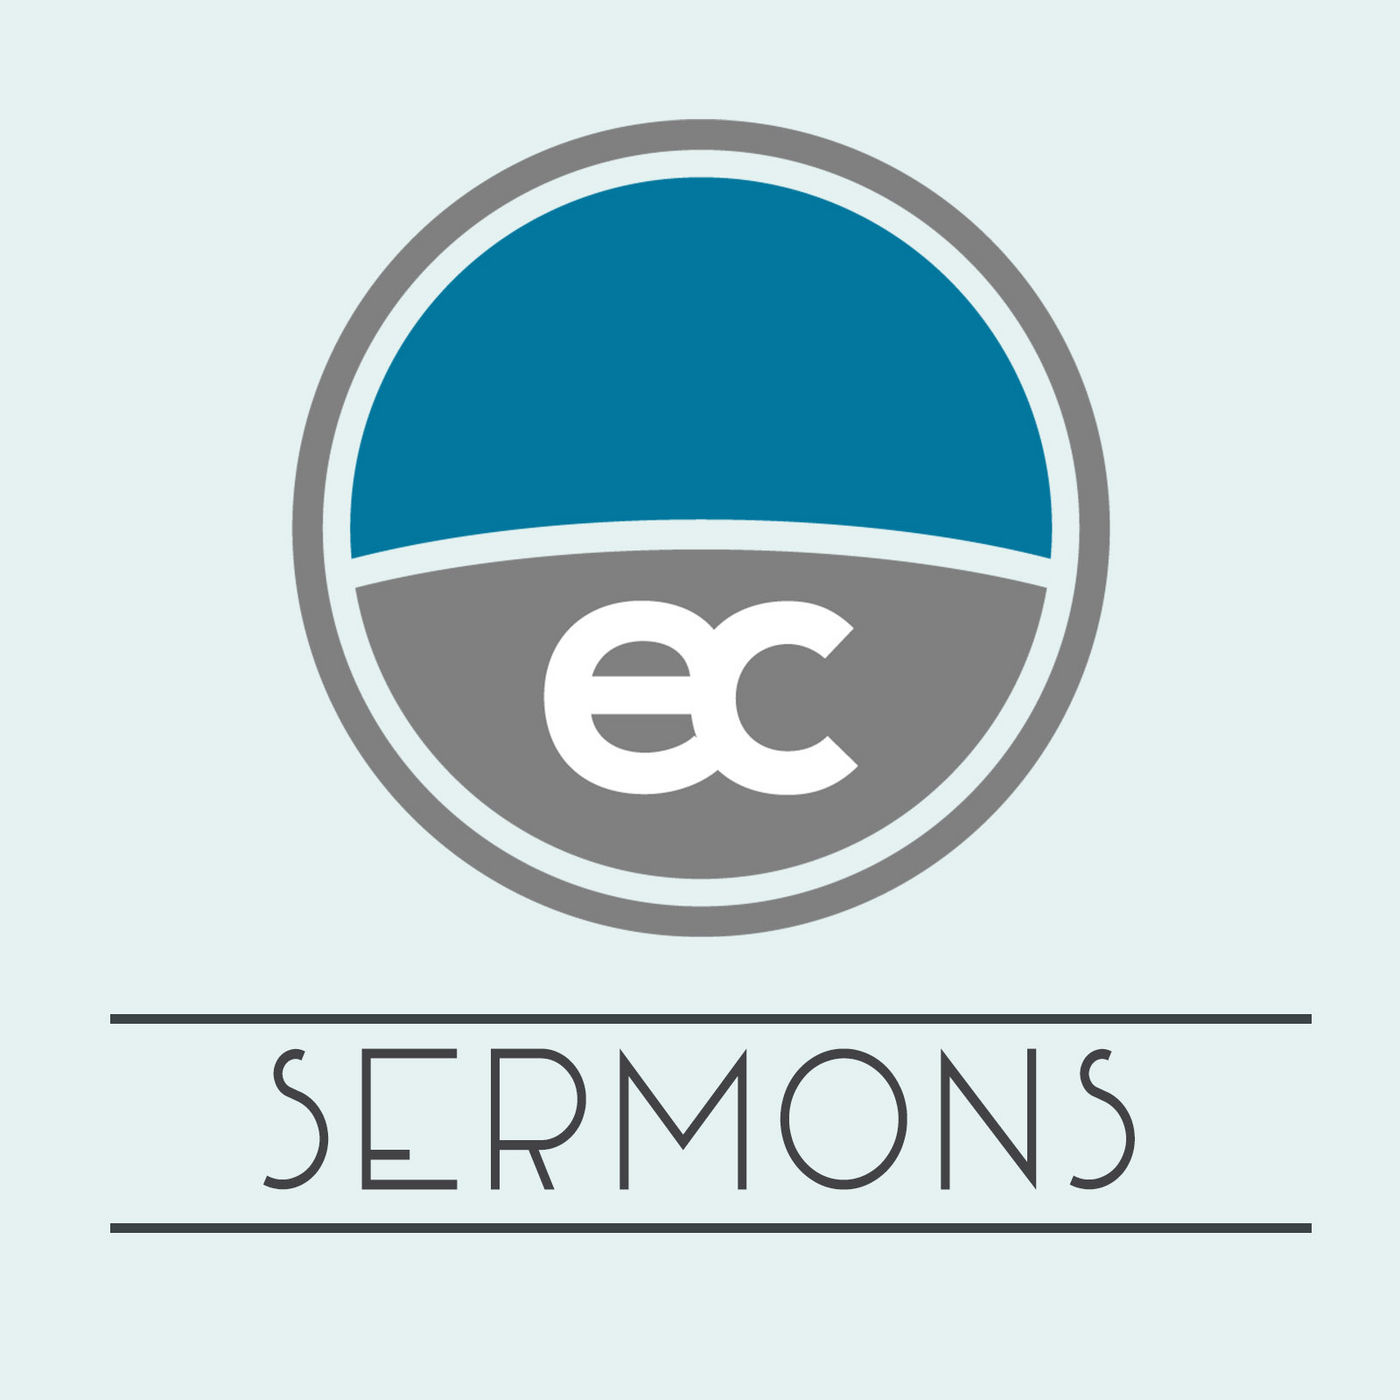 Exchange Sermons